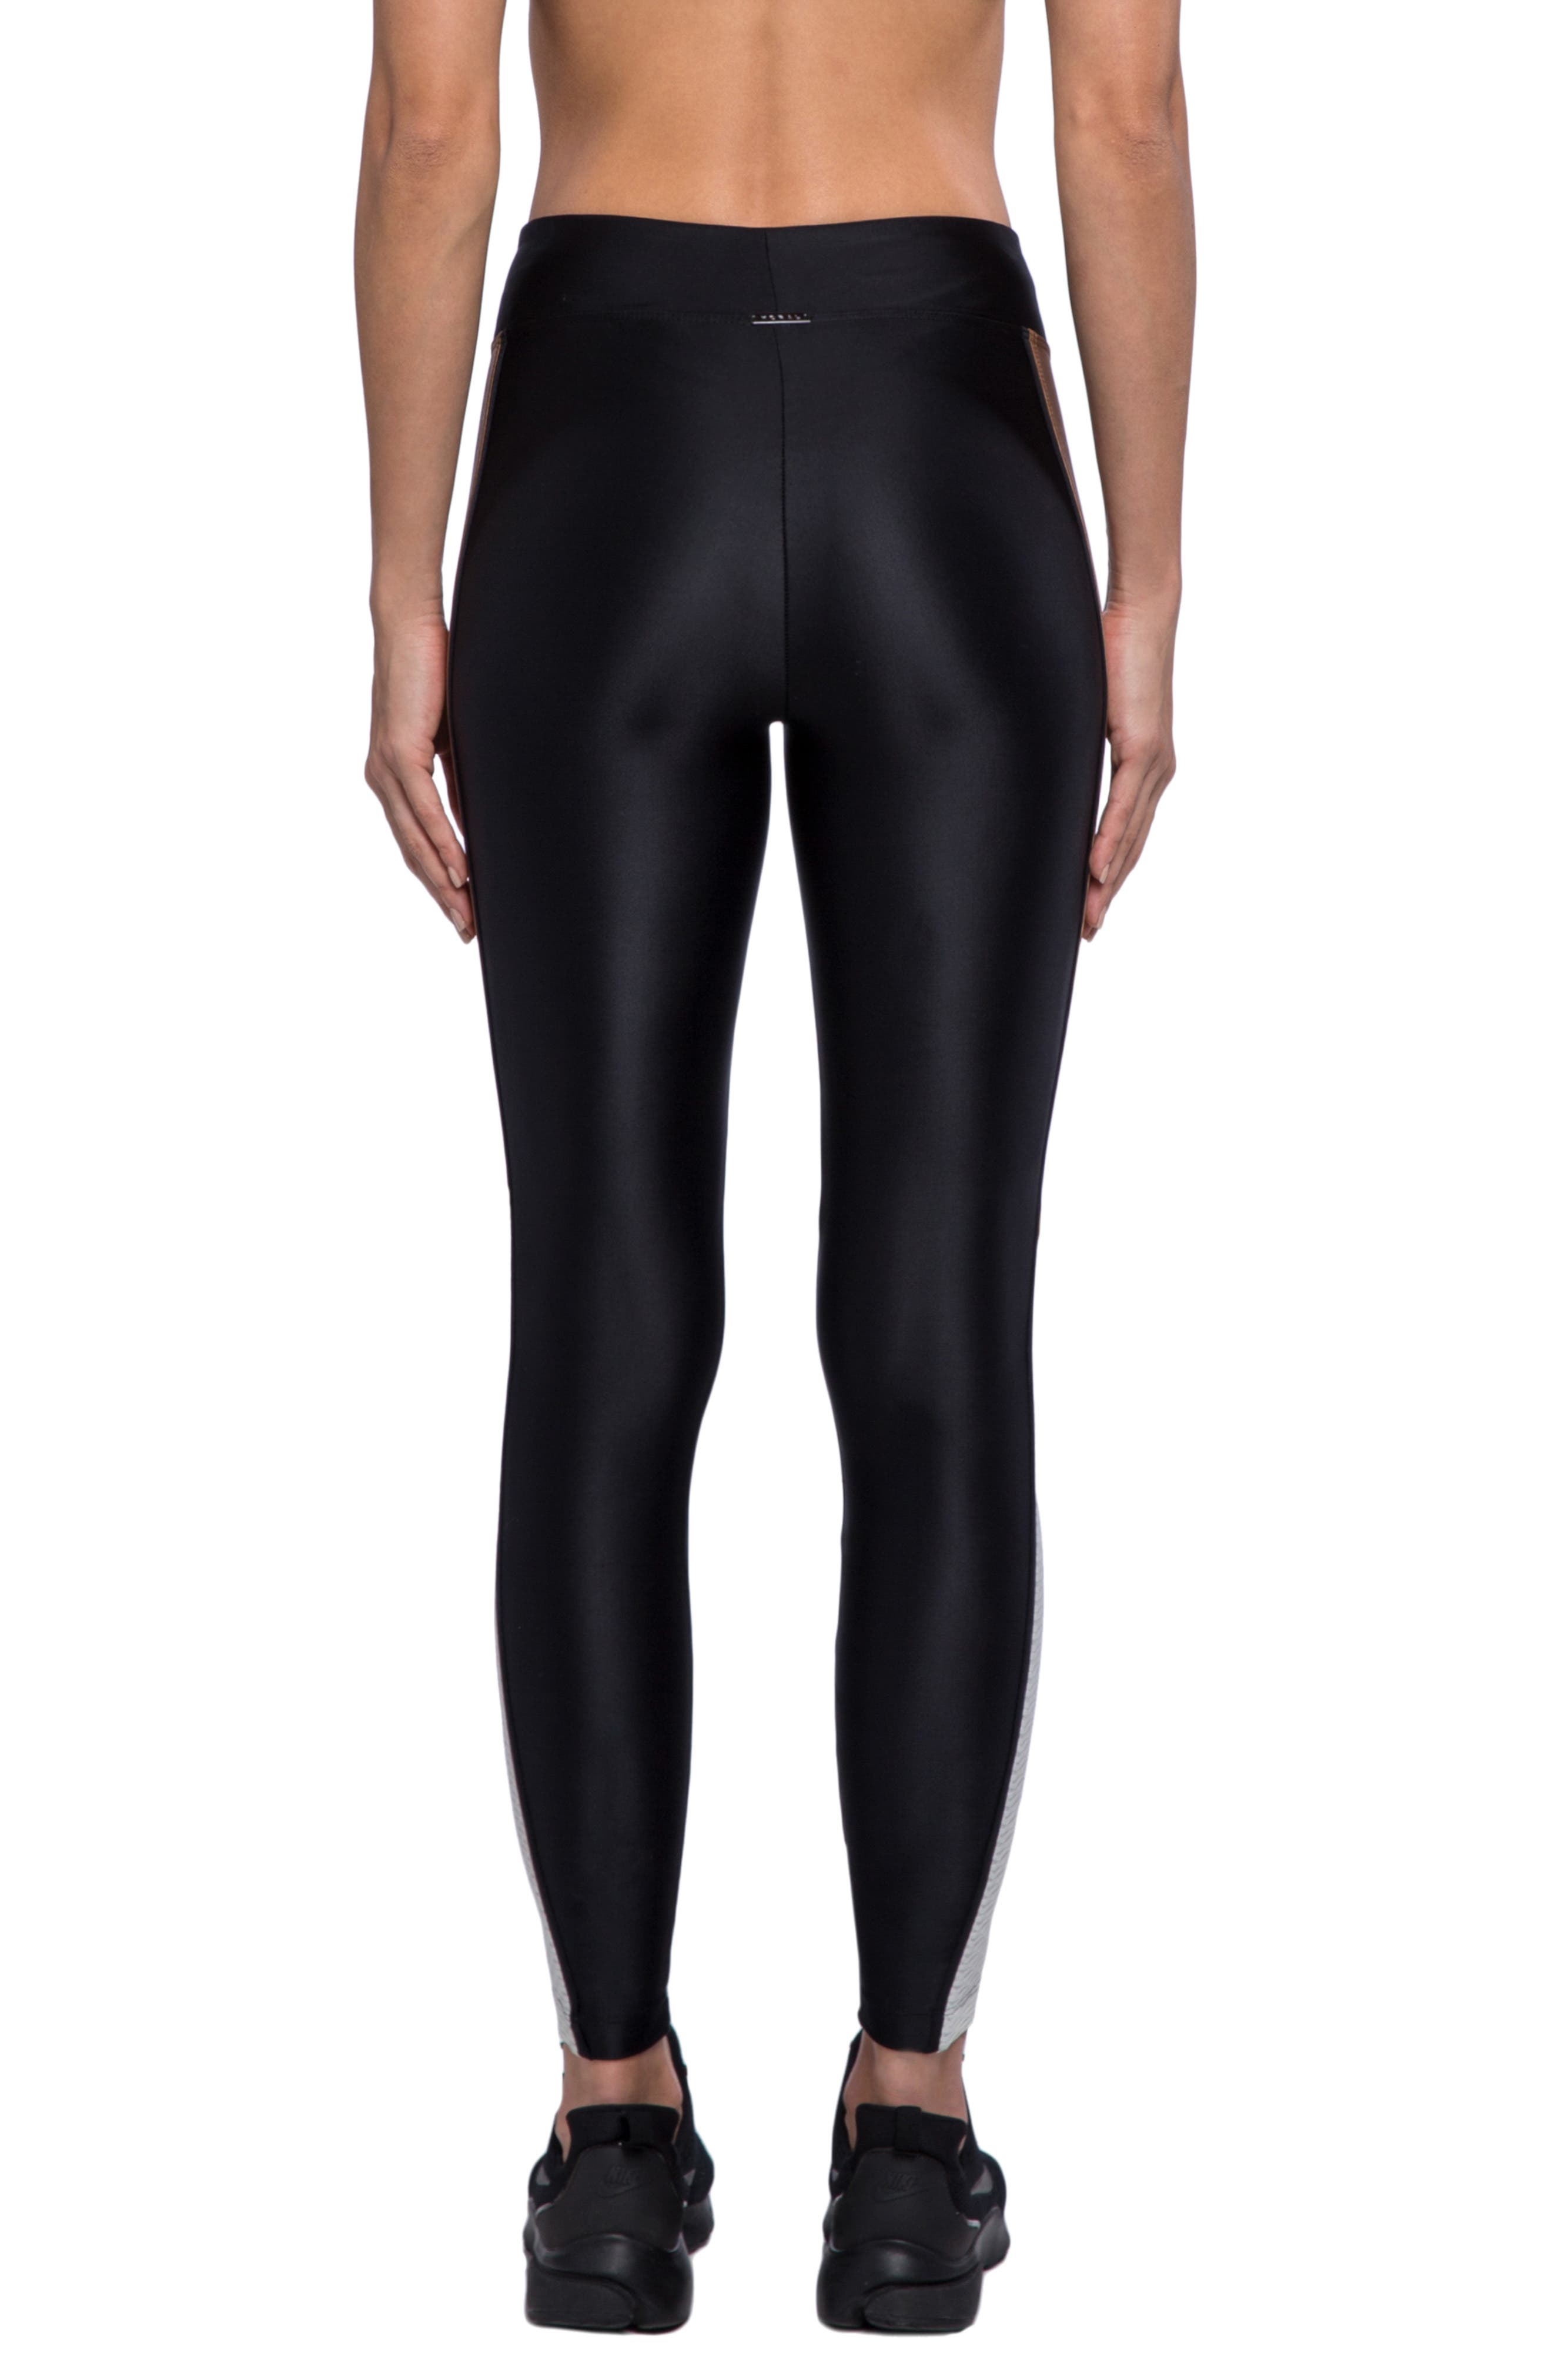 Serendipity Energy Leggings,                             Alternate thumbnail 2, color,                             BLACK/ TOFFEE/ EGRET